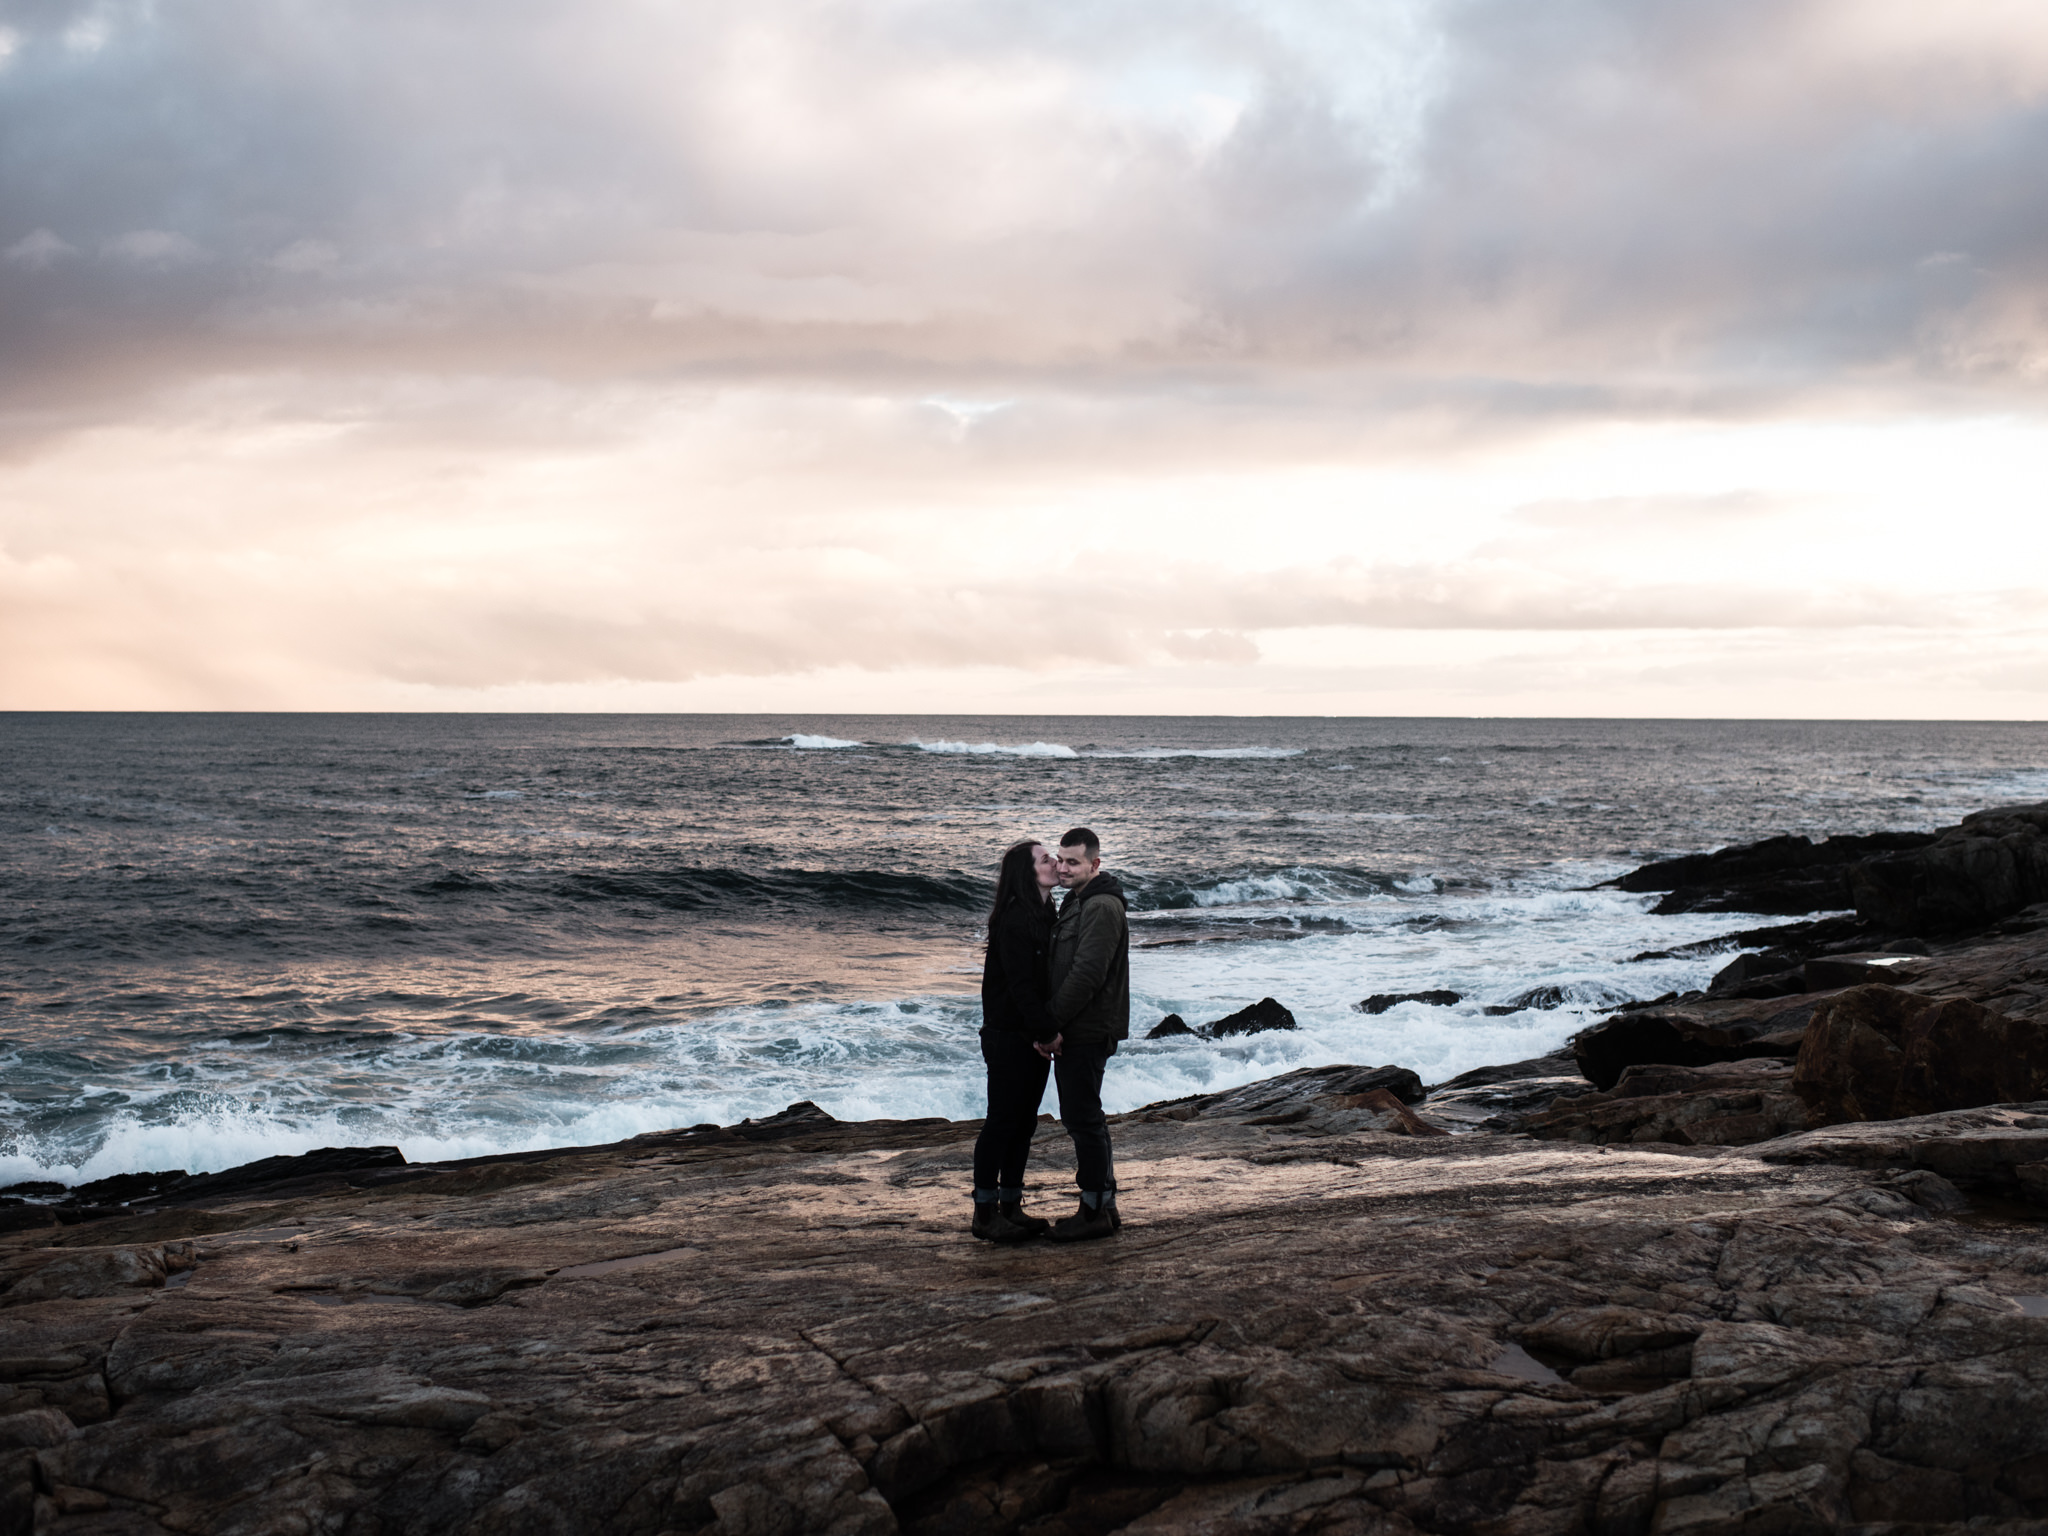 duncans-cove-halifax-engagement-photography-15.jpg